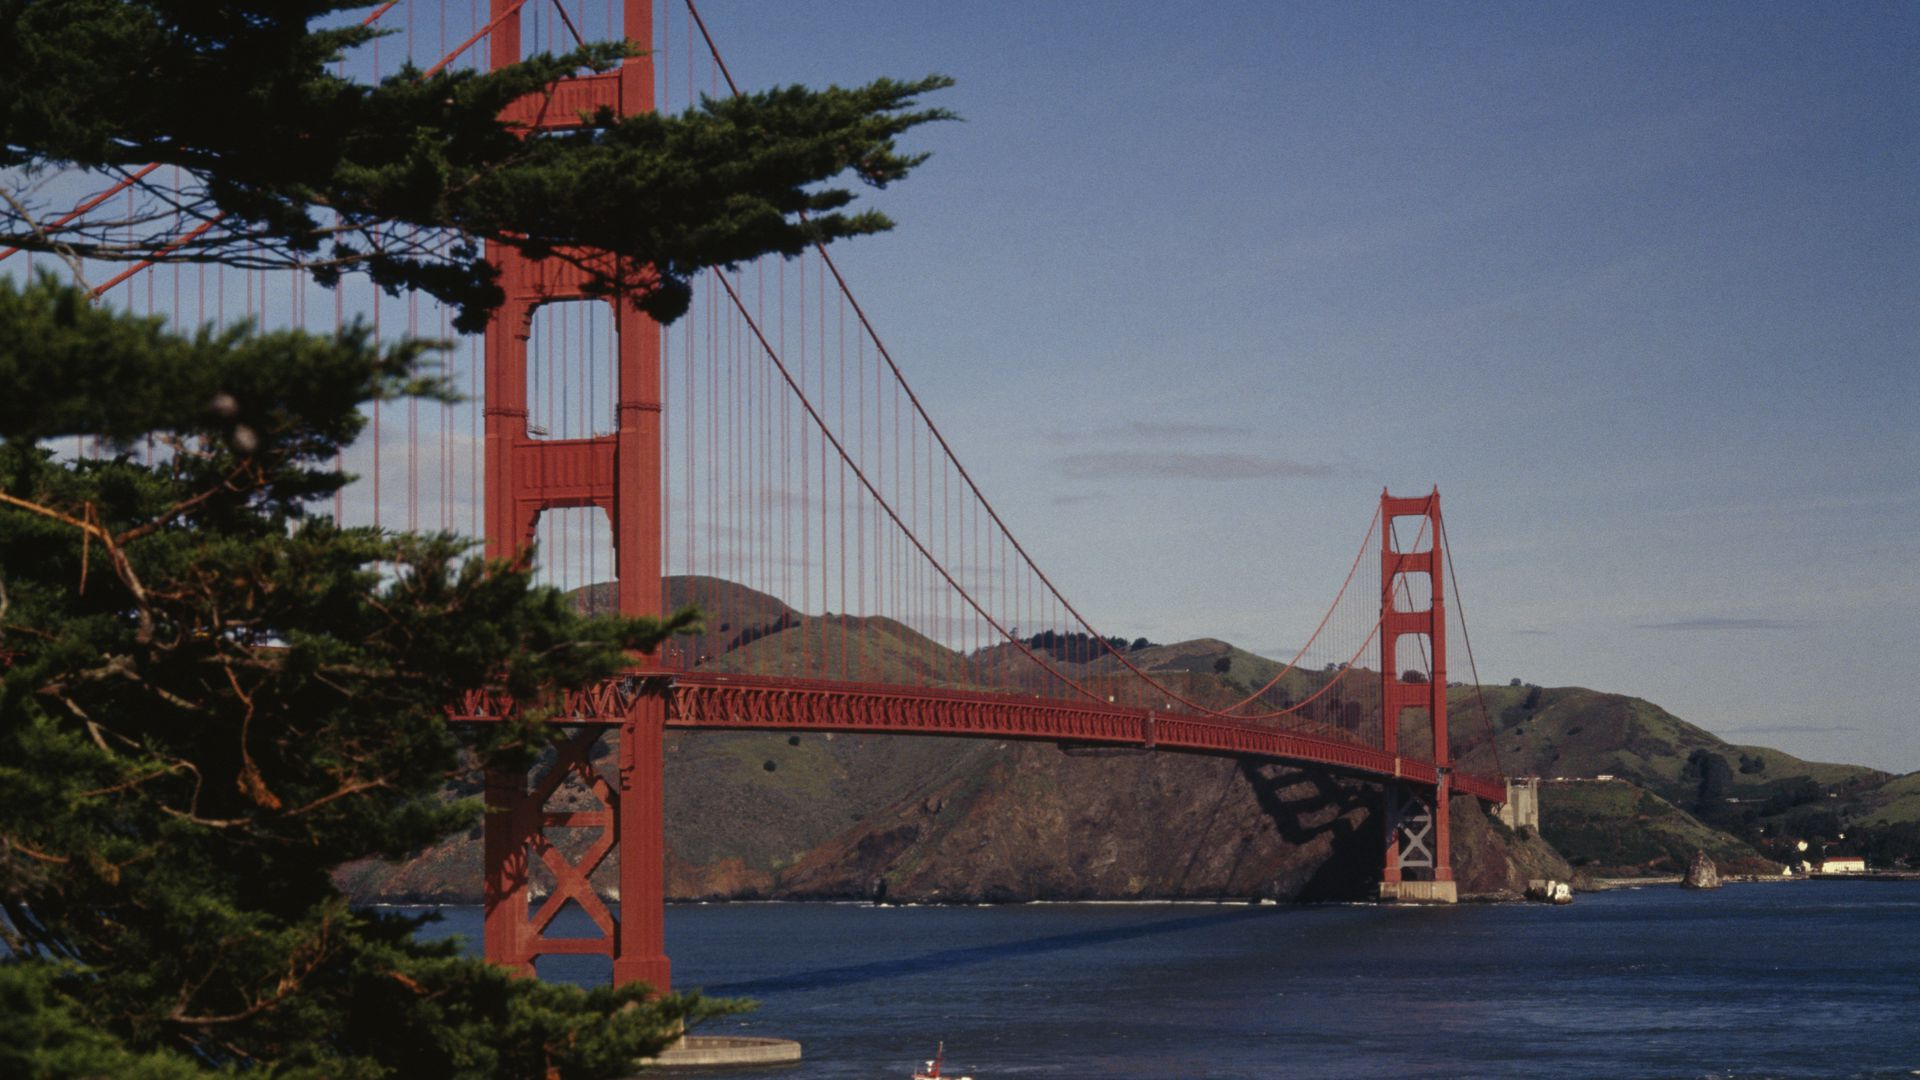 The San Francisco Golden Bridge during the daytime.